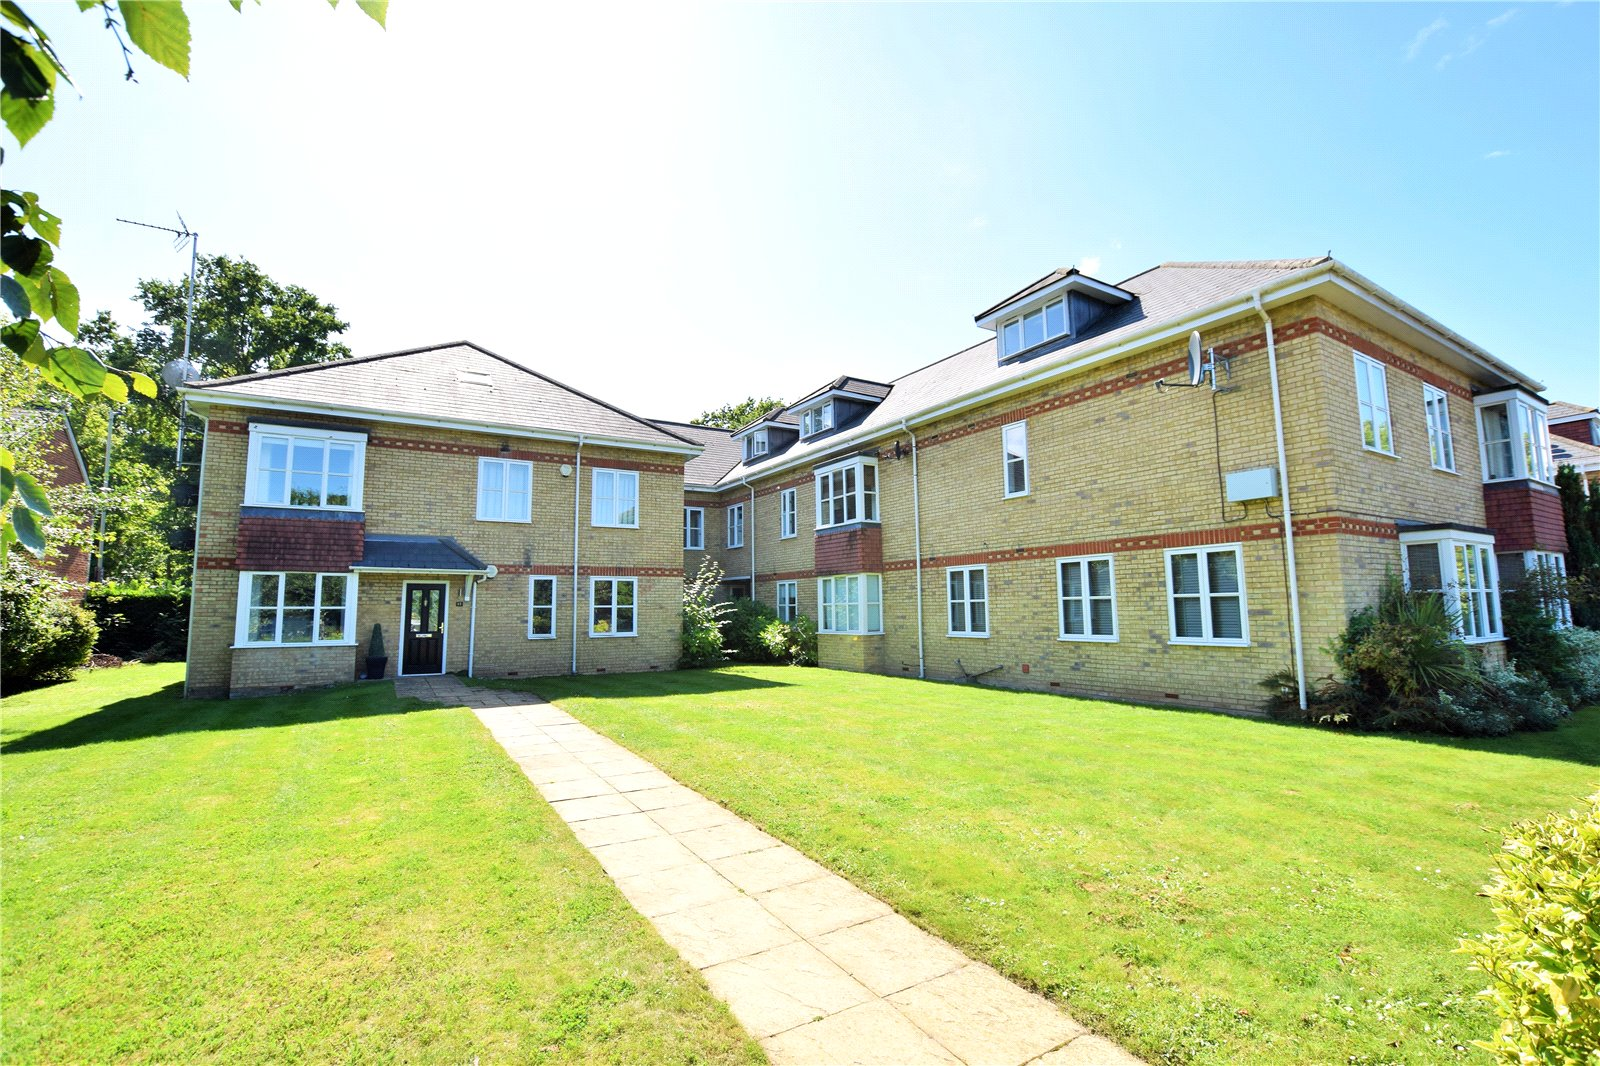 2 Bedrooms Maisonette Flat for sale in Woodmill Court, Ascot, Berkshire, SL5